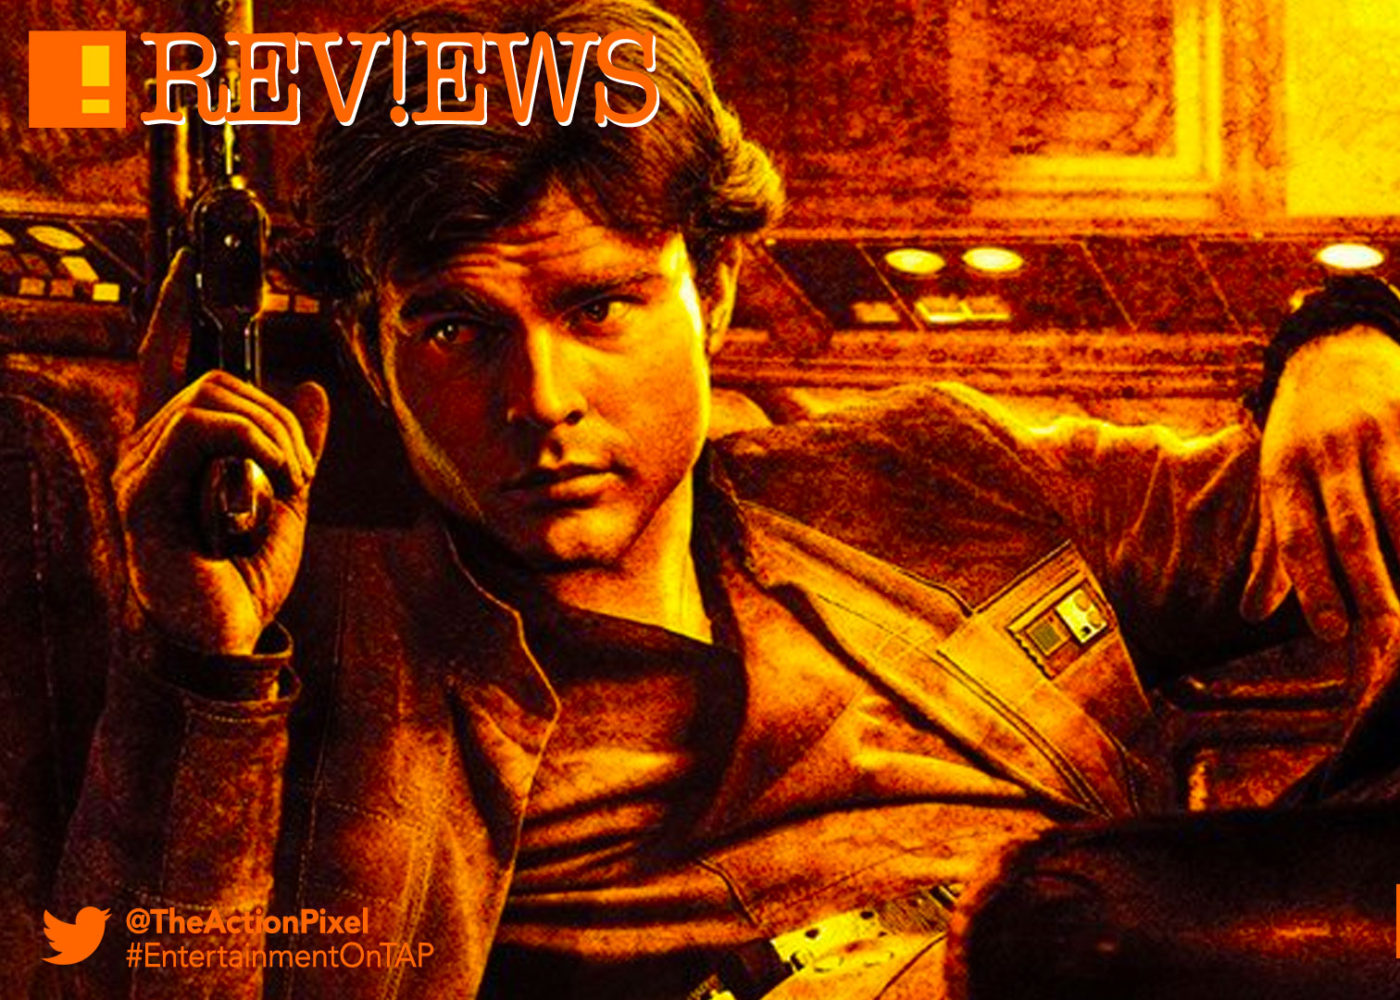 tap reviews, film reviews, movie reviews,movie review,poster, poster art, ron howard, han solo, a star wars story, alden ehrenreich, han solo, the action pixel, star wars, solo movie, han solo solo movie, a star wars story, entertainment on tap, donald glover,woody harrelson,big game, tv spot,chewie, qi'ra, solo, imax poster, imax,